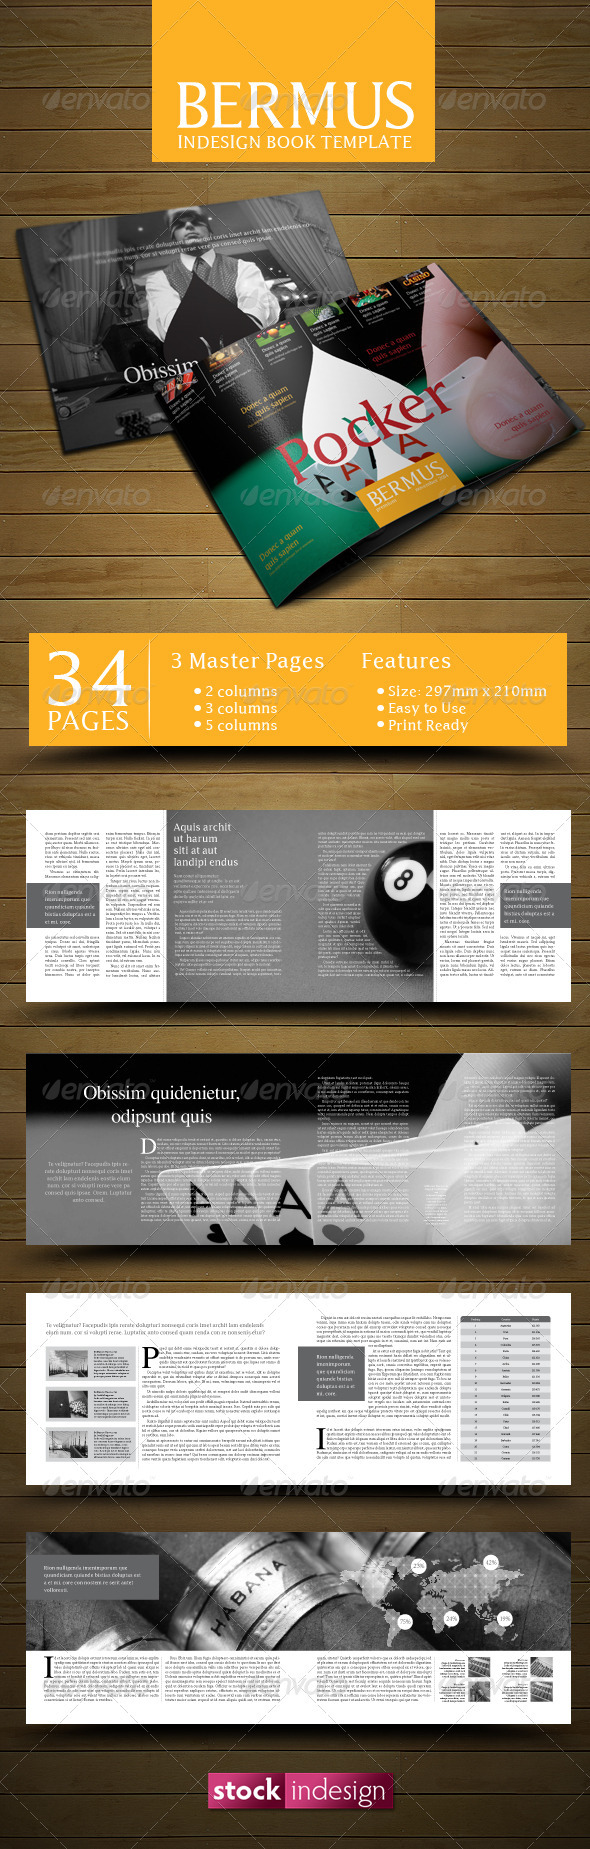 InDesign Book Template: Bermus by stockindesign | GraphicRiver